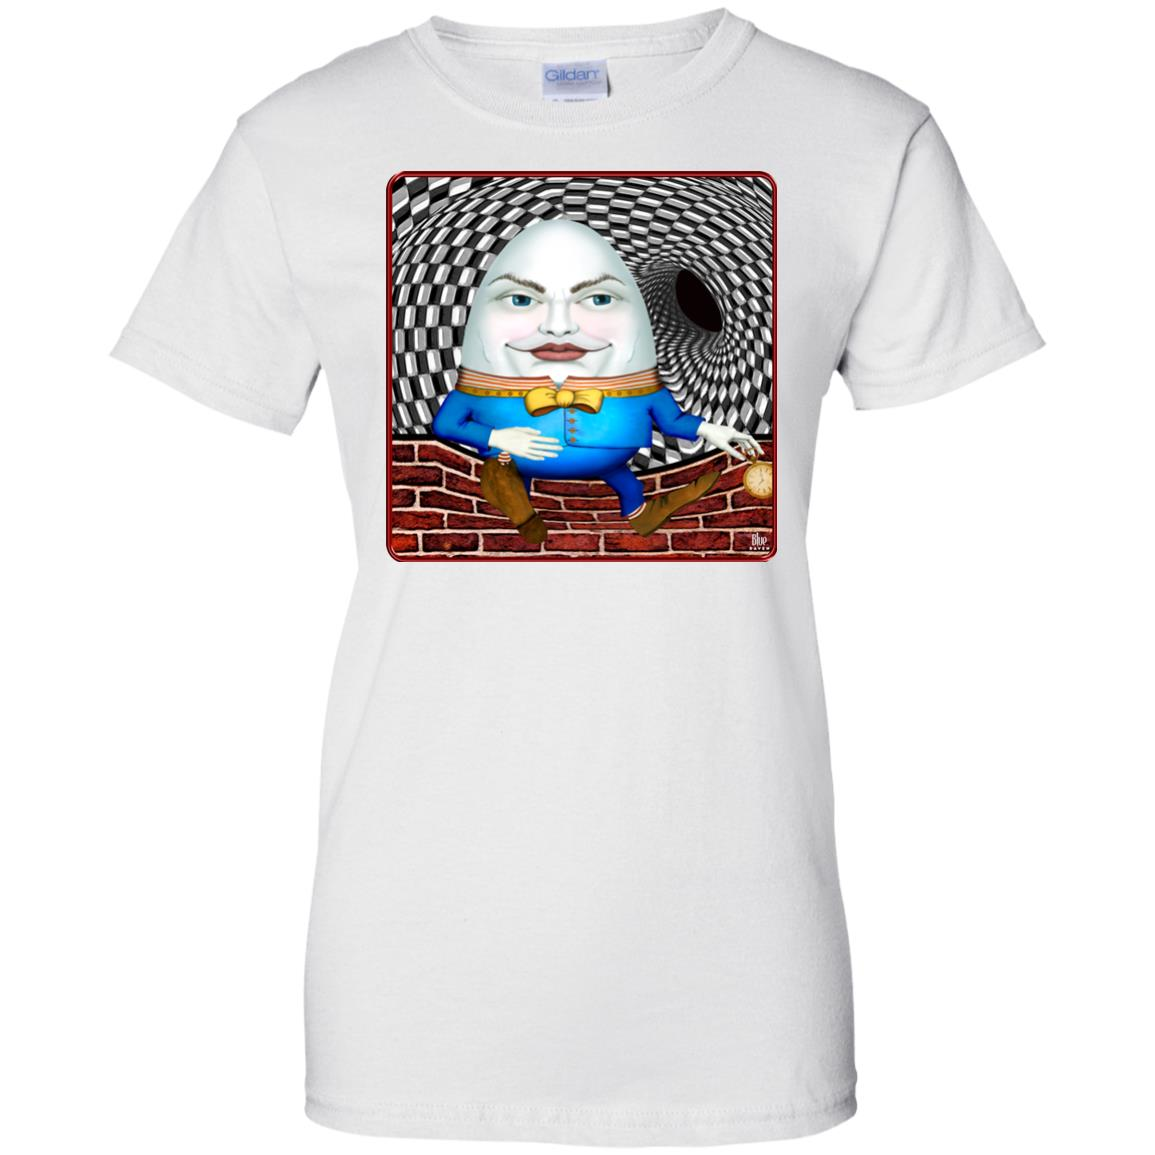 humpty dumpty - Women's Relaxed Fit T-Shirt